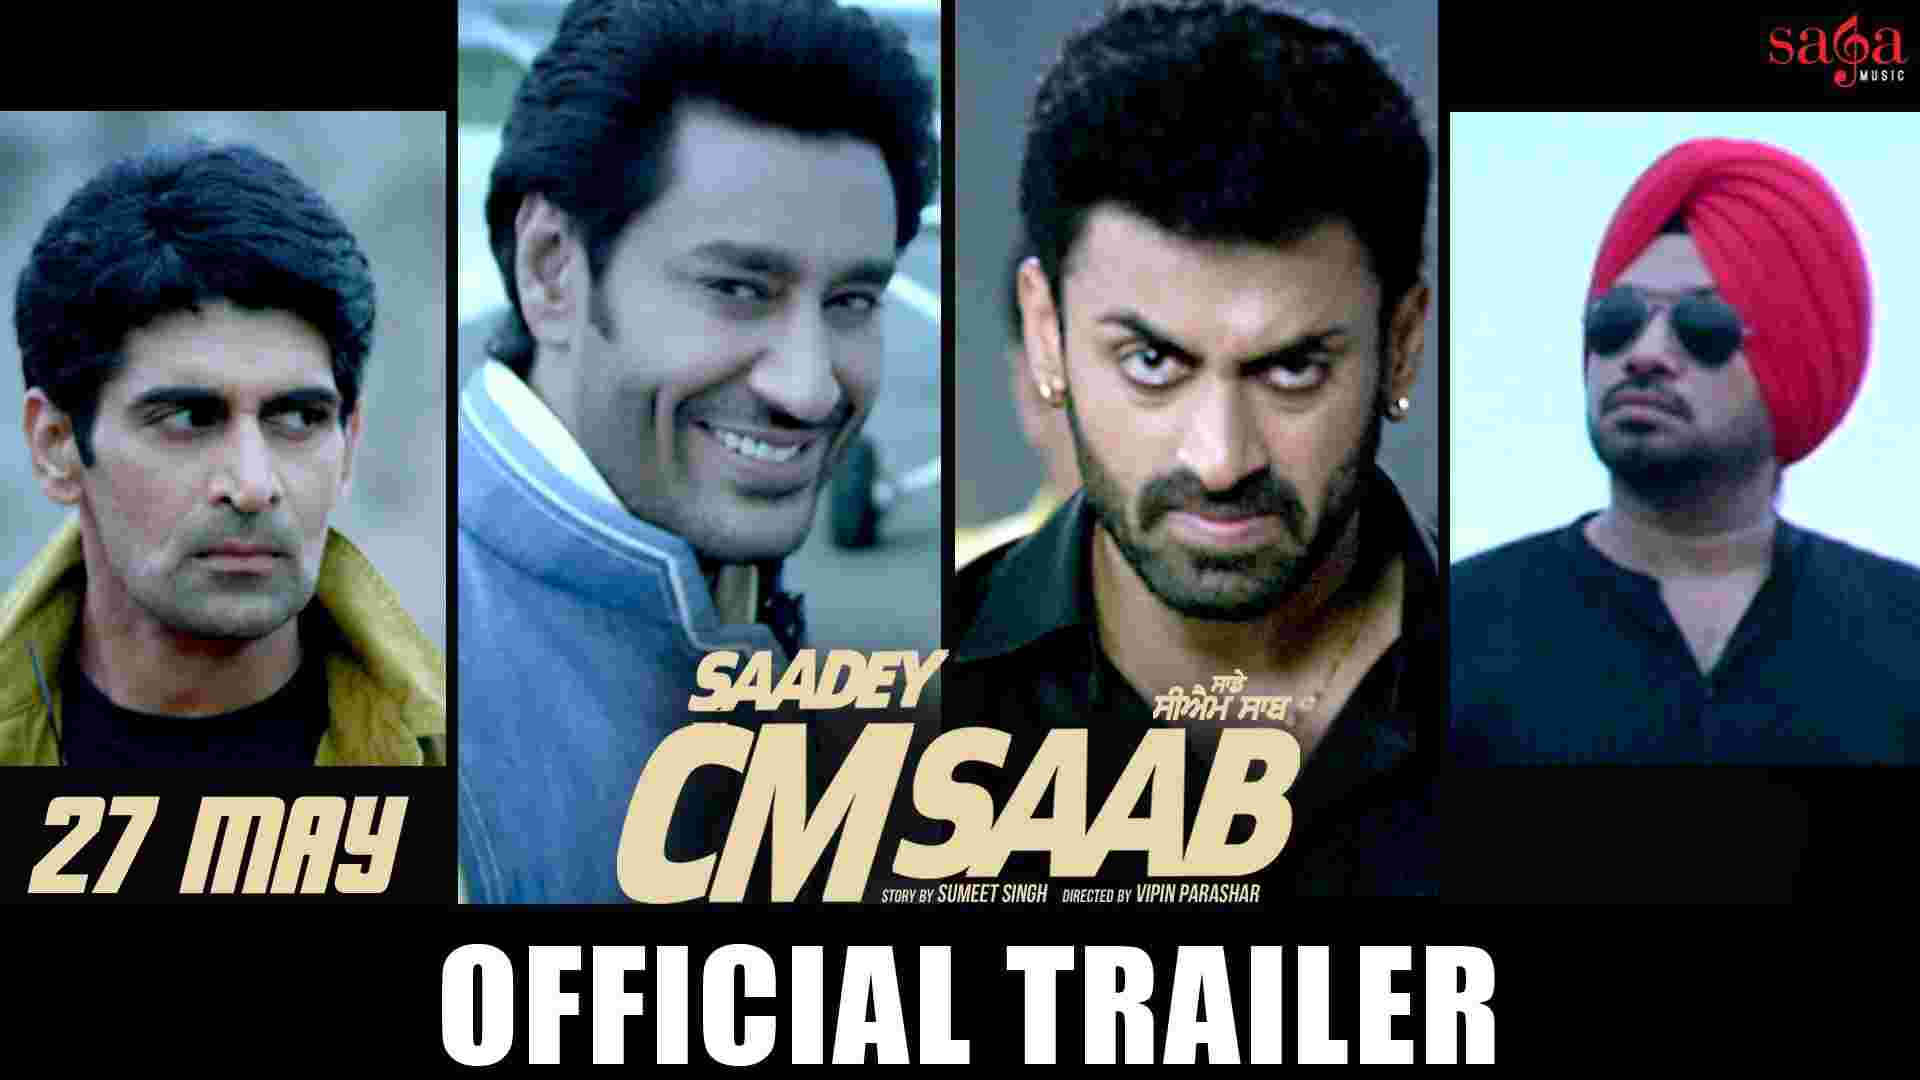 SAADEY CM SAAB Trailer - Harbhajan Mann - Gurpreet Ghuggi - 27 May - Latest Punjabi Movie - SagaHits